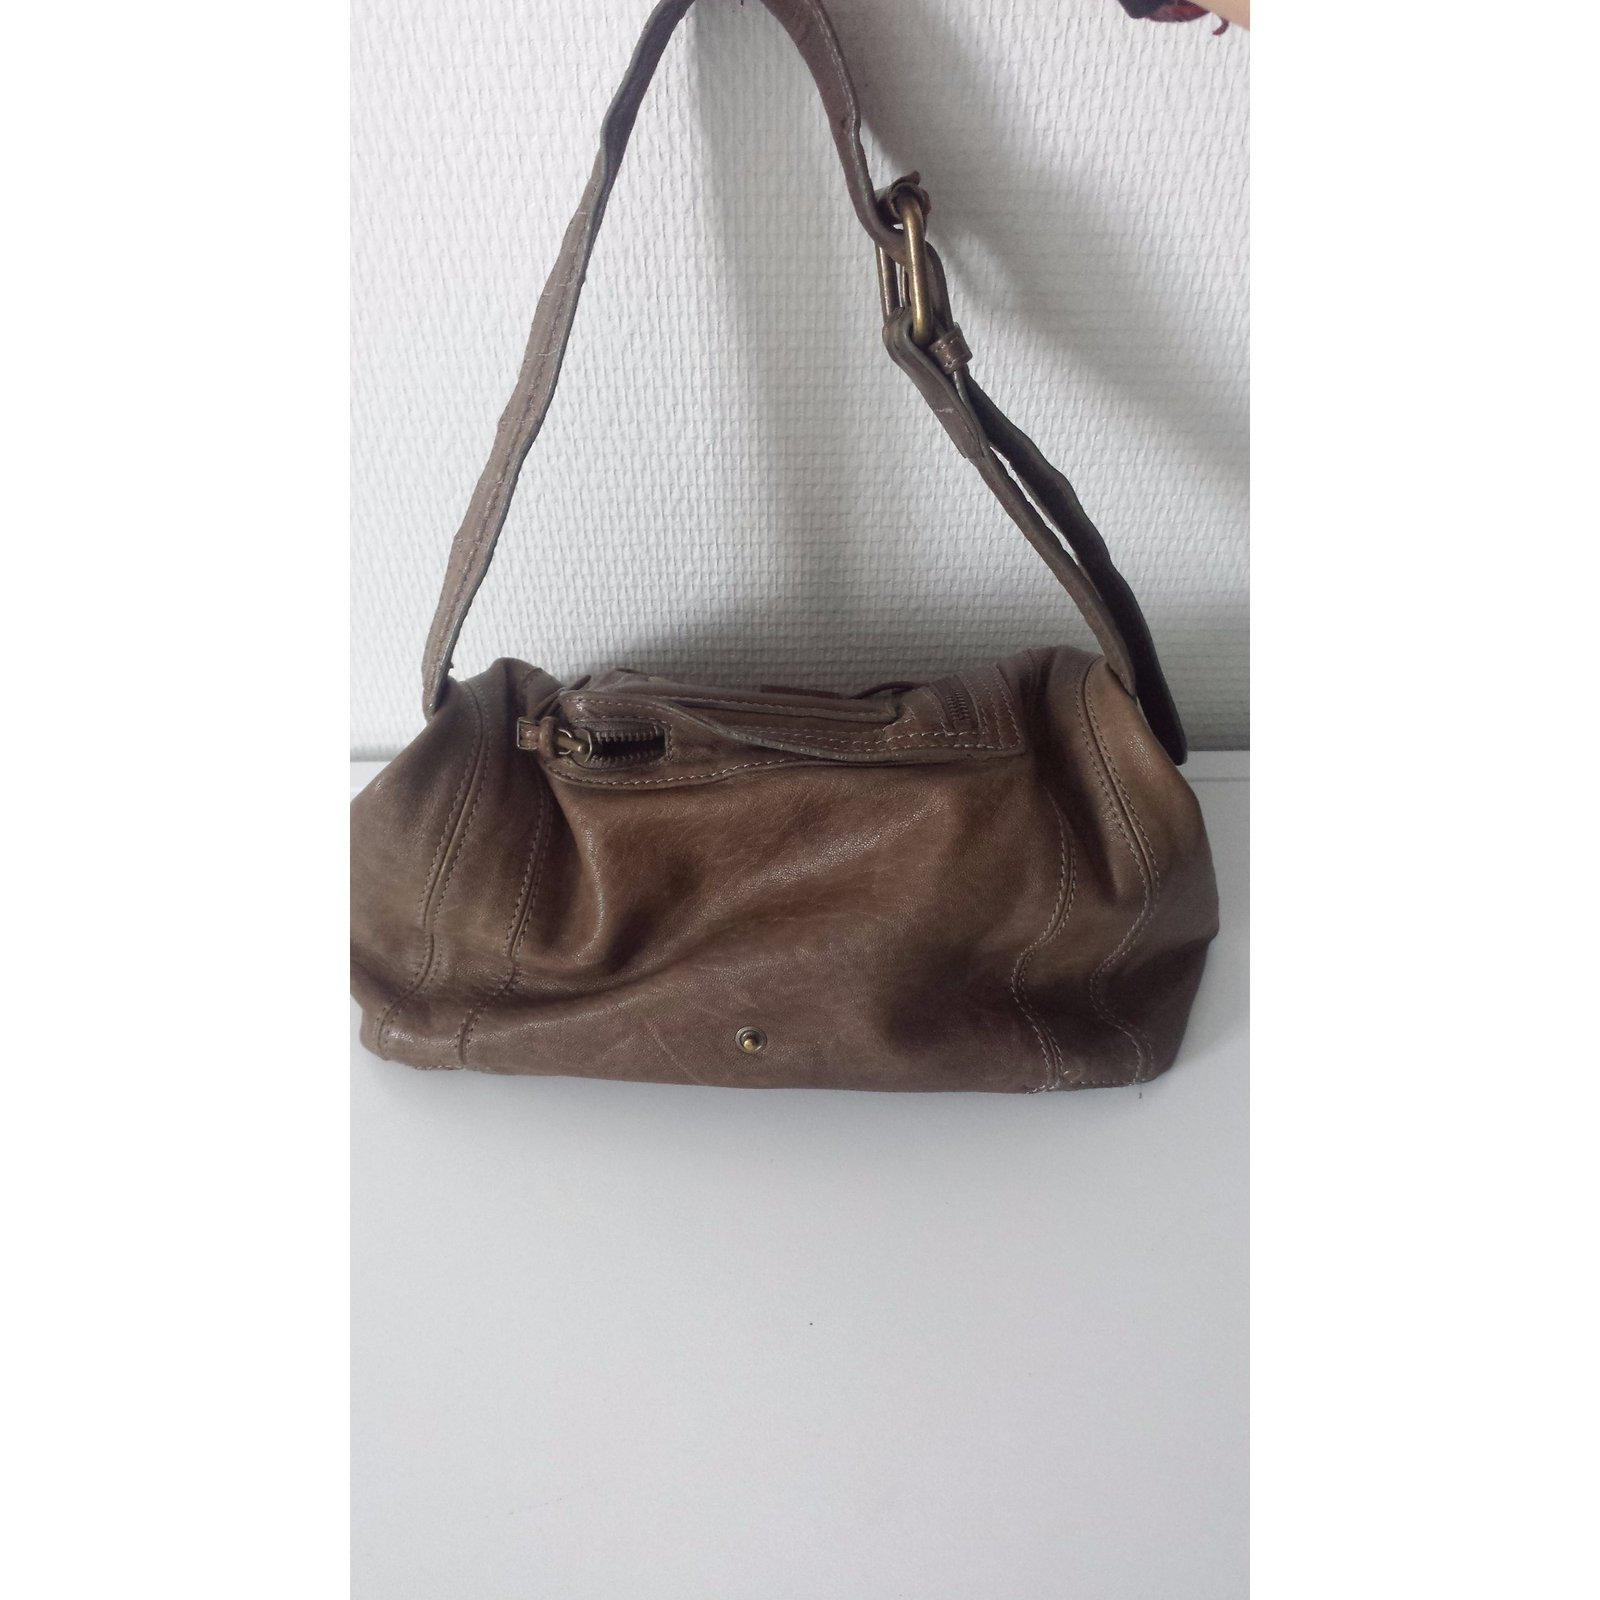 fb95301c8ddce Facebook · Pin This. Jerome Dreyfuss Handbag Handbags Leather Taupe ref.21928.  Jerome Dreyfuss Handbag Handbags Leather Taupe ref.21928